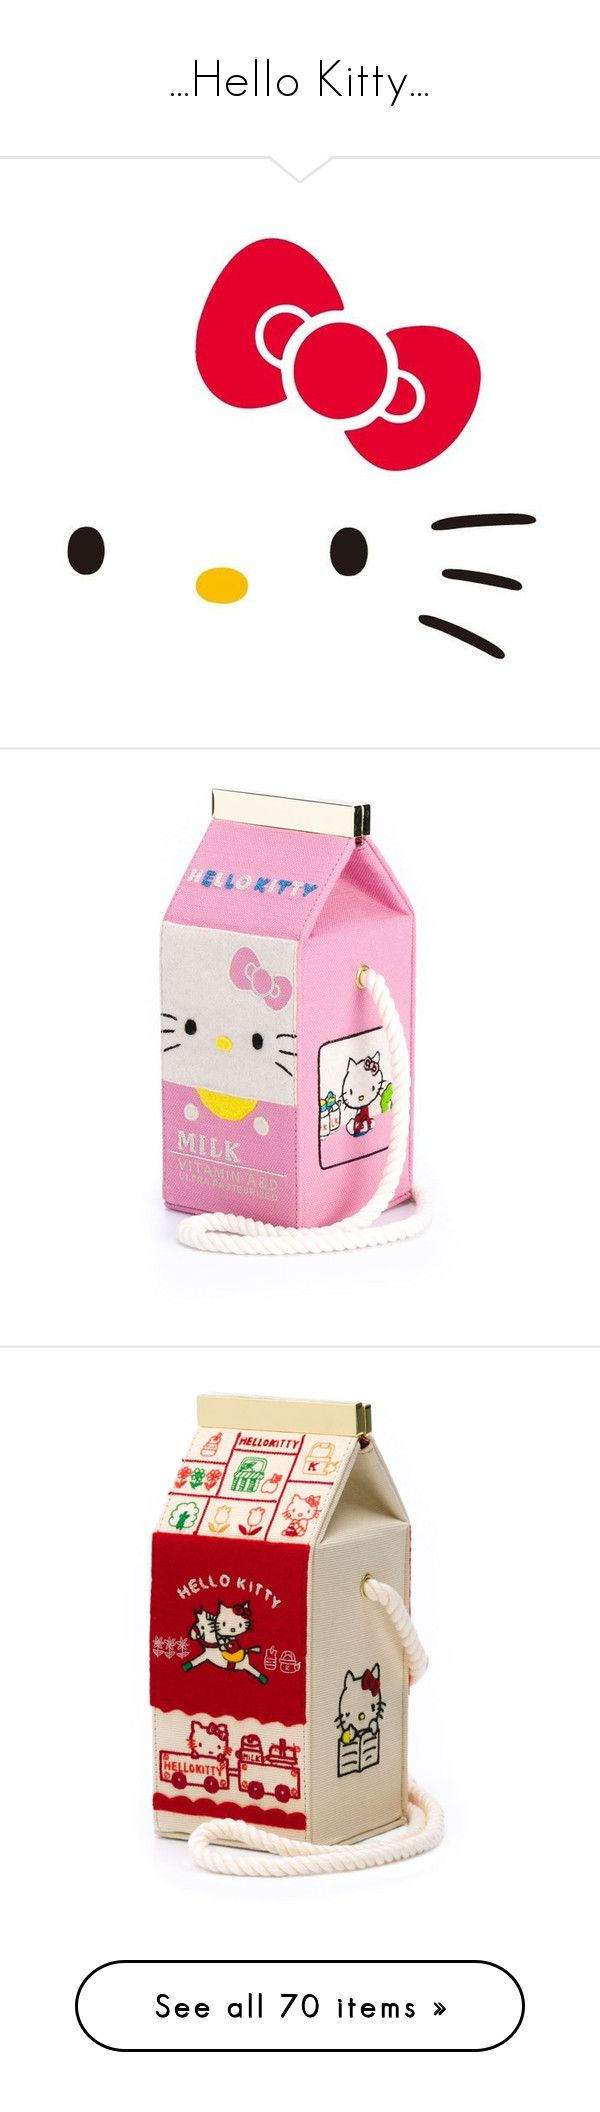 """""""...Hello Kitty..."""" by marciahofmant ❤ liked on Polyvore featuring bags, handbags, pink hello kitty handbag, crossbody purses, pink hello kitty purse, cartoon handbag, pink crossbody bag, shoulder bags, pink crossbody and multi color purse"""